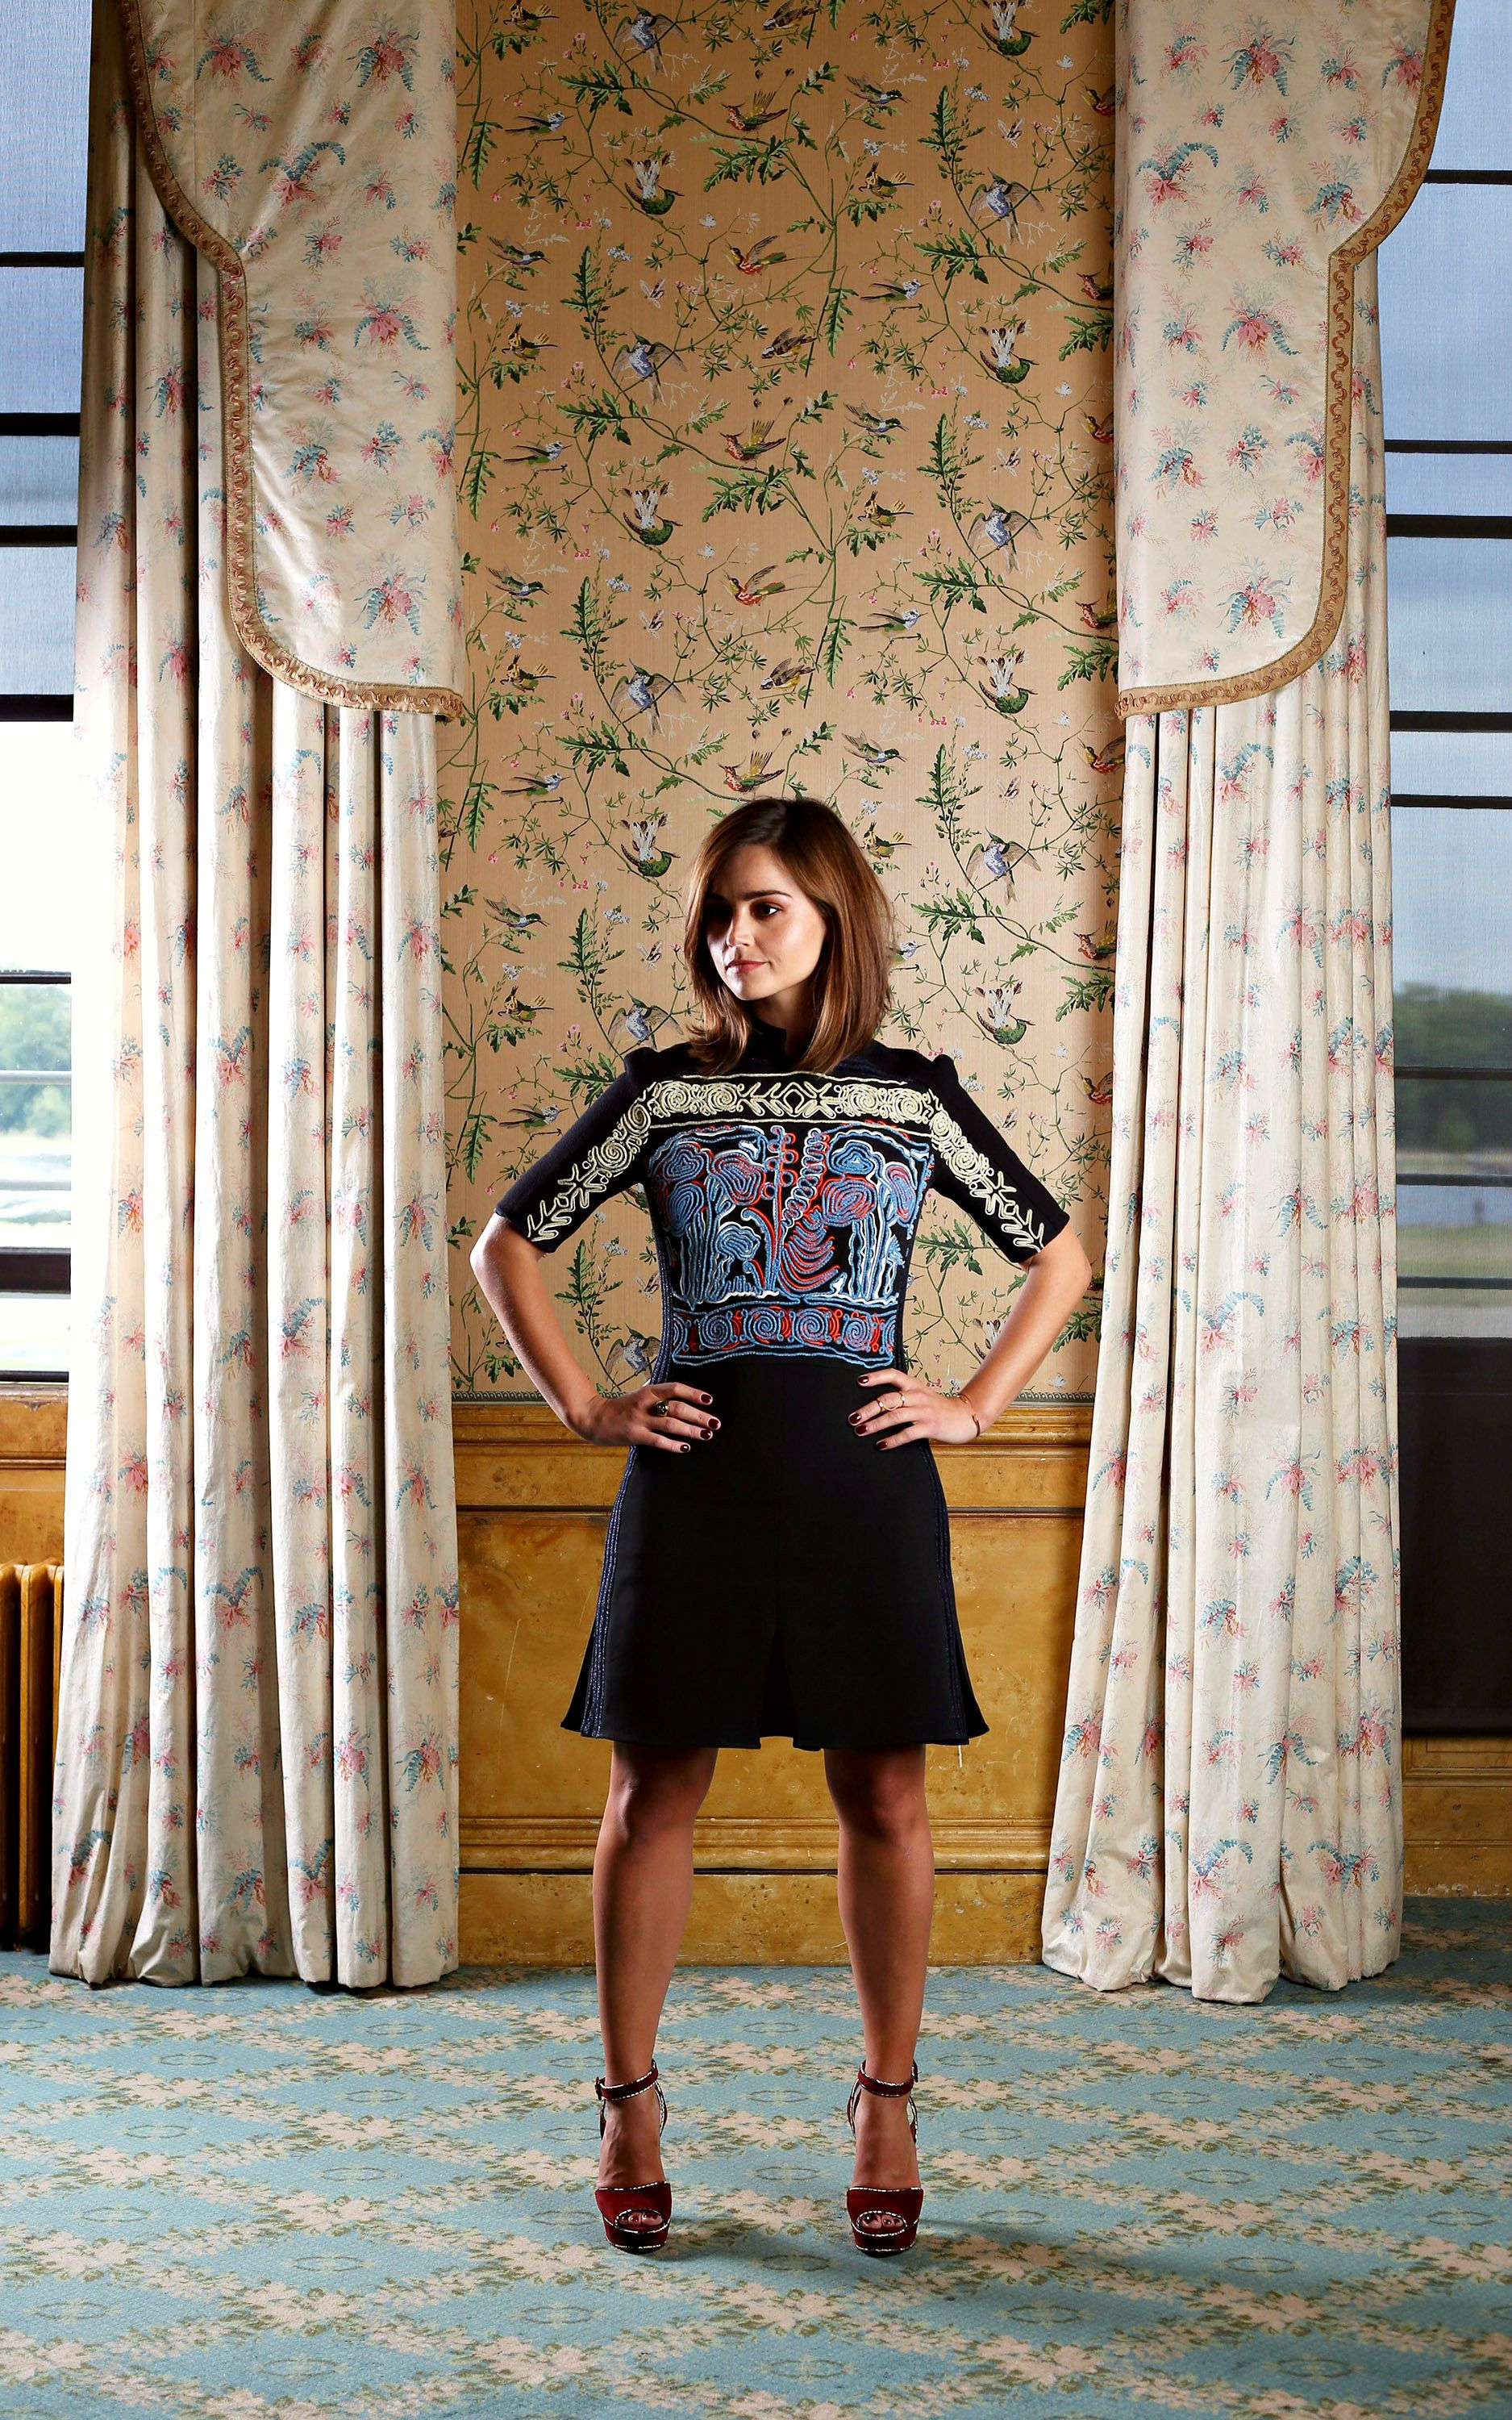 Jenna Coleman daringly takes the plunge in low-cut leg